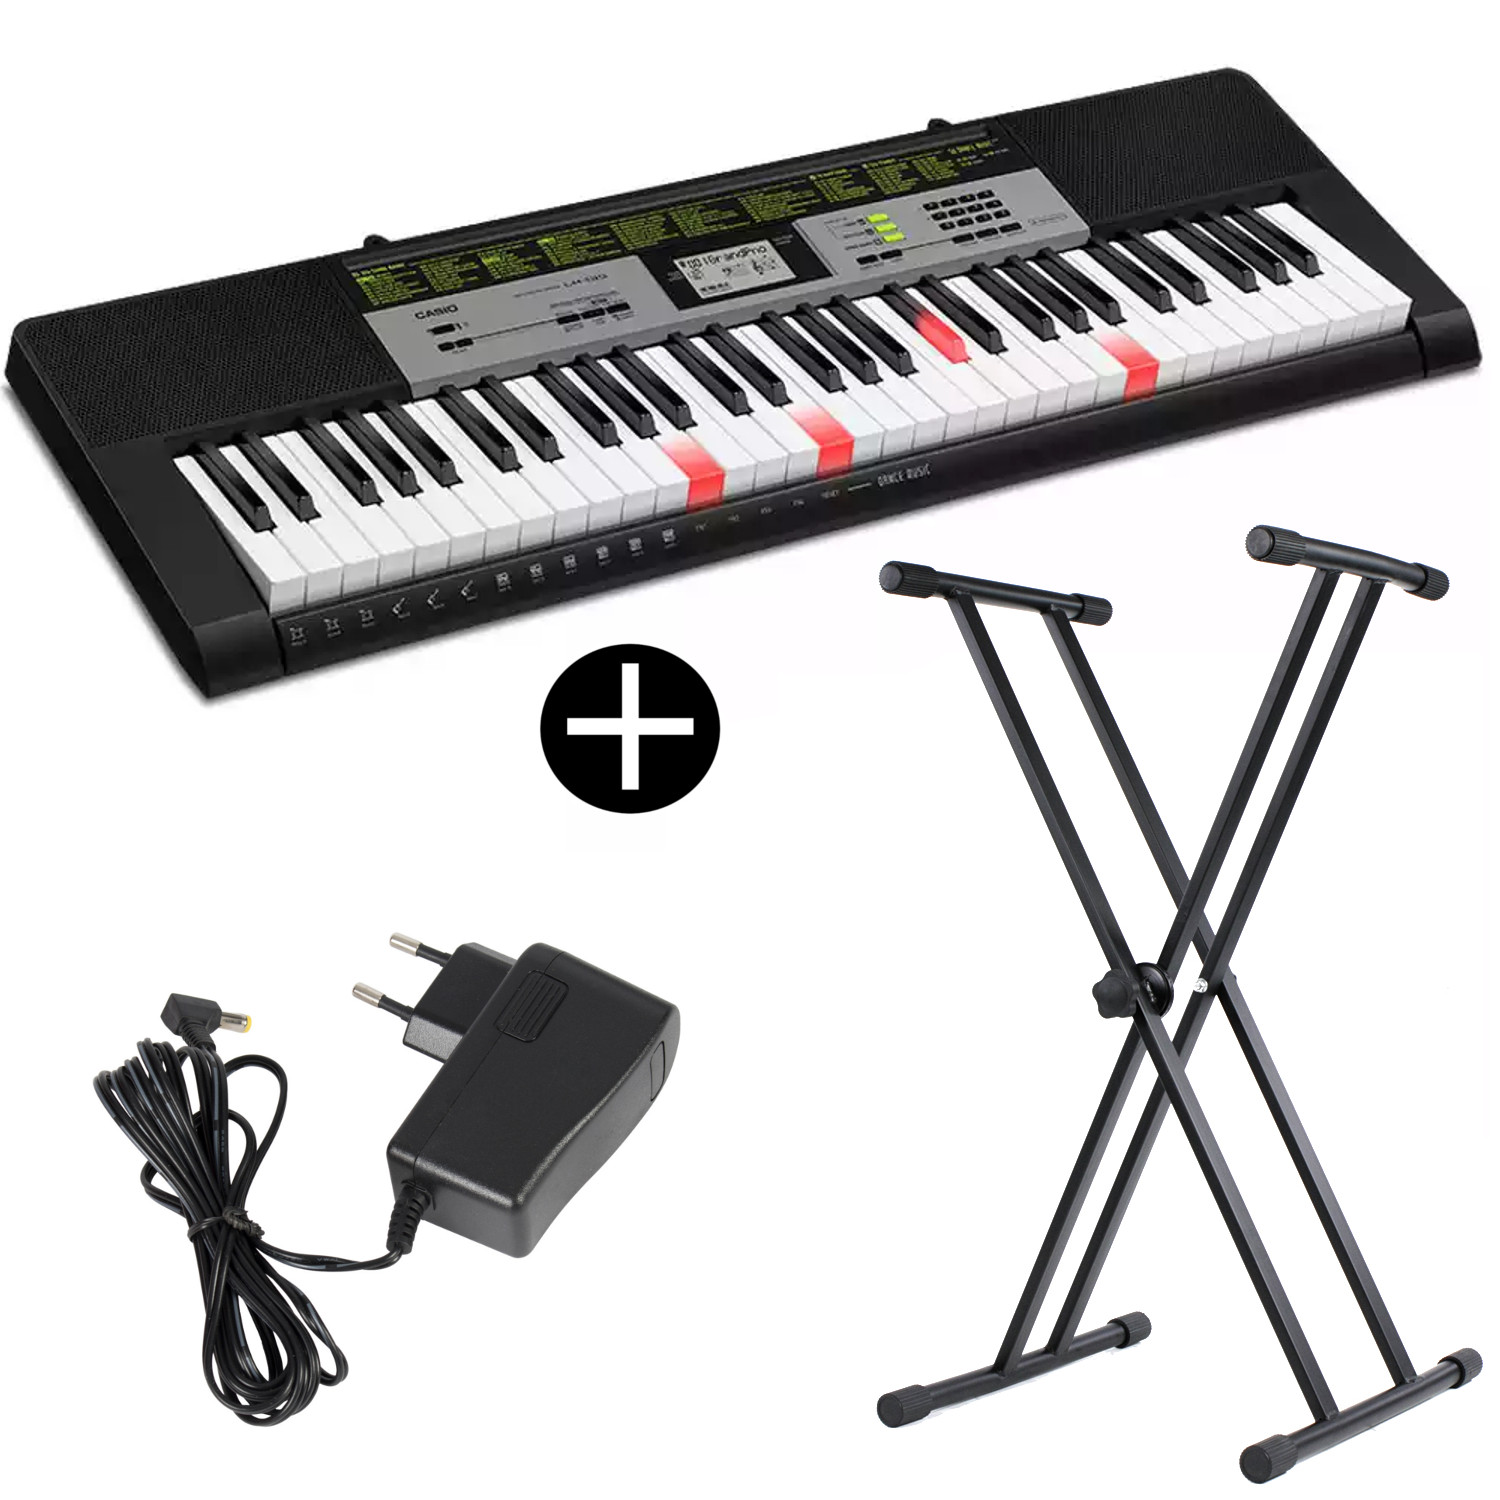 Casio LK 135 keyboard with 61 illuminated keys and stand